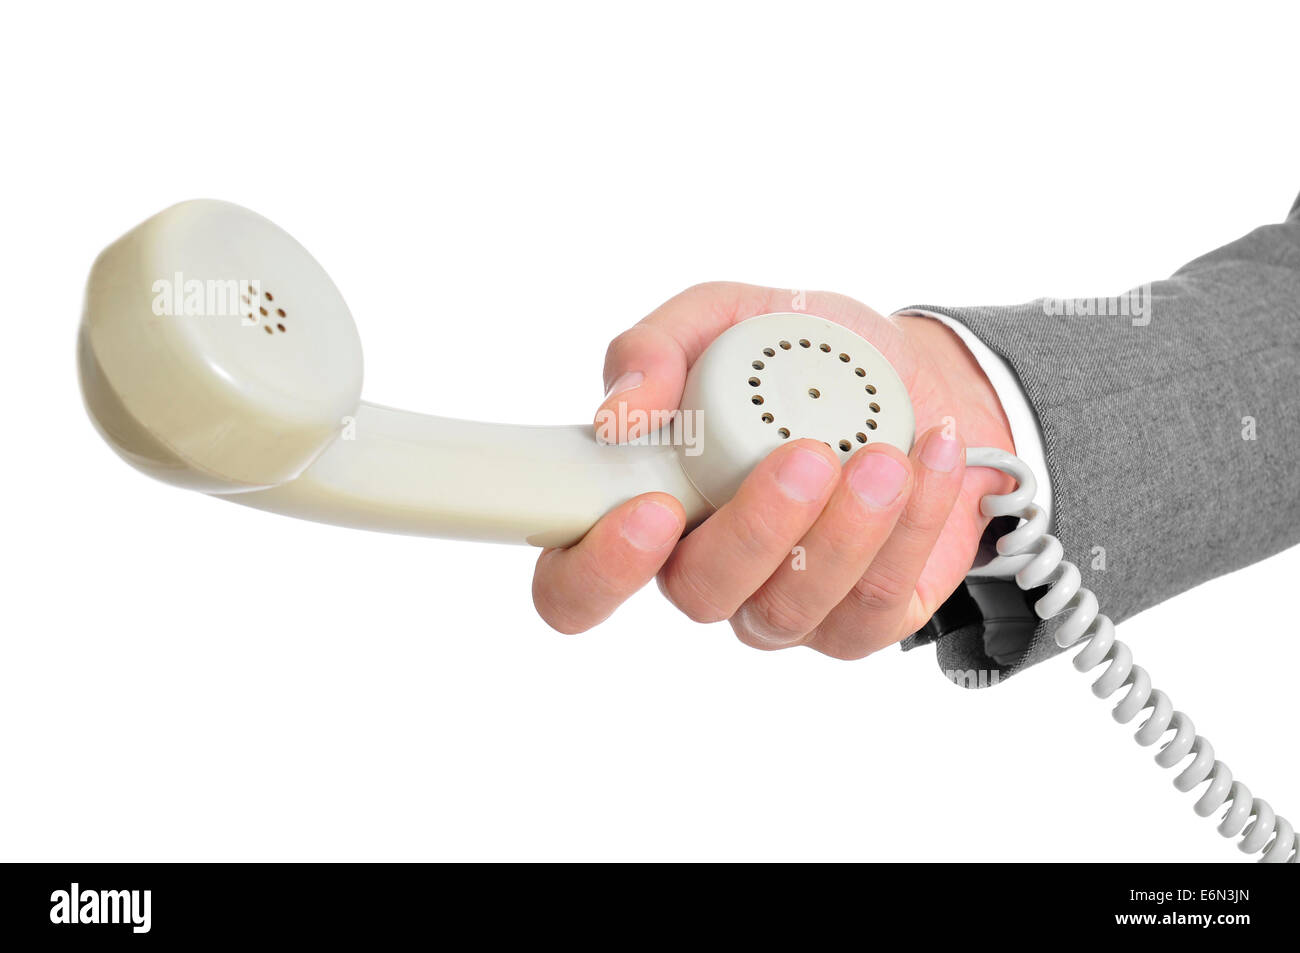 closeup of the hand of a man wearing a suit holding the handset of a telephone - Stock Image